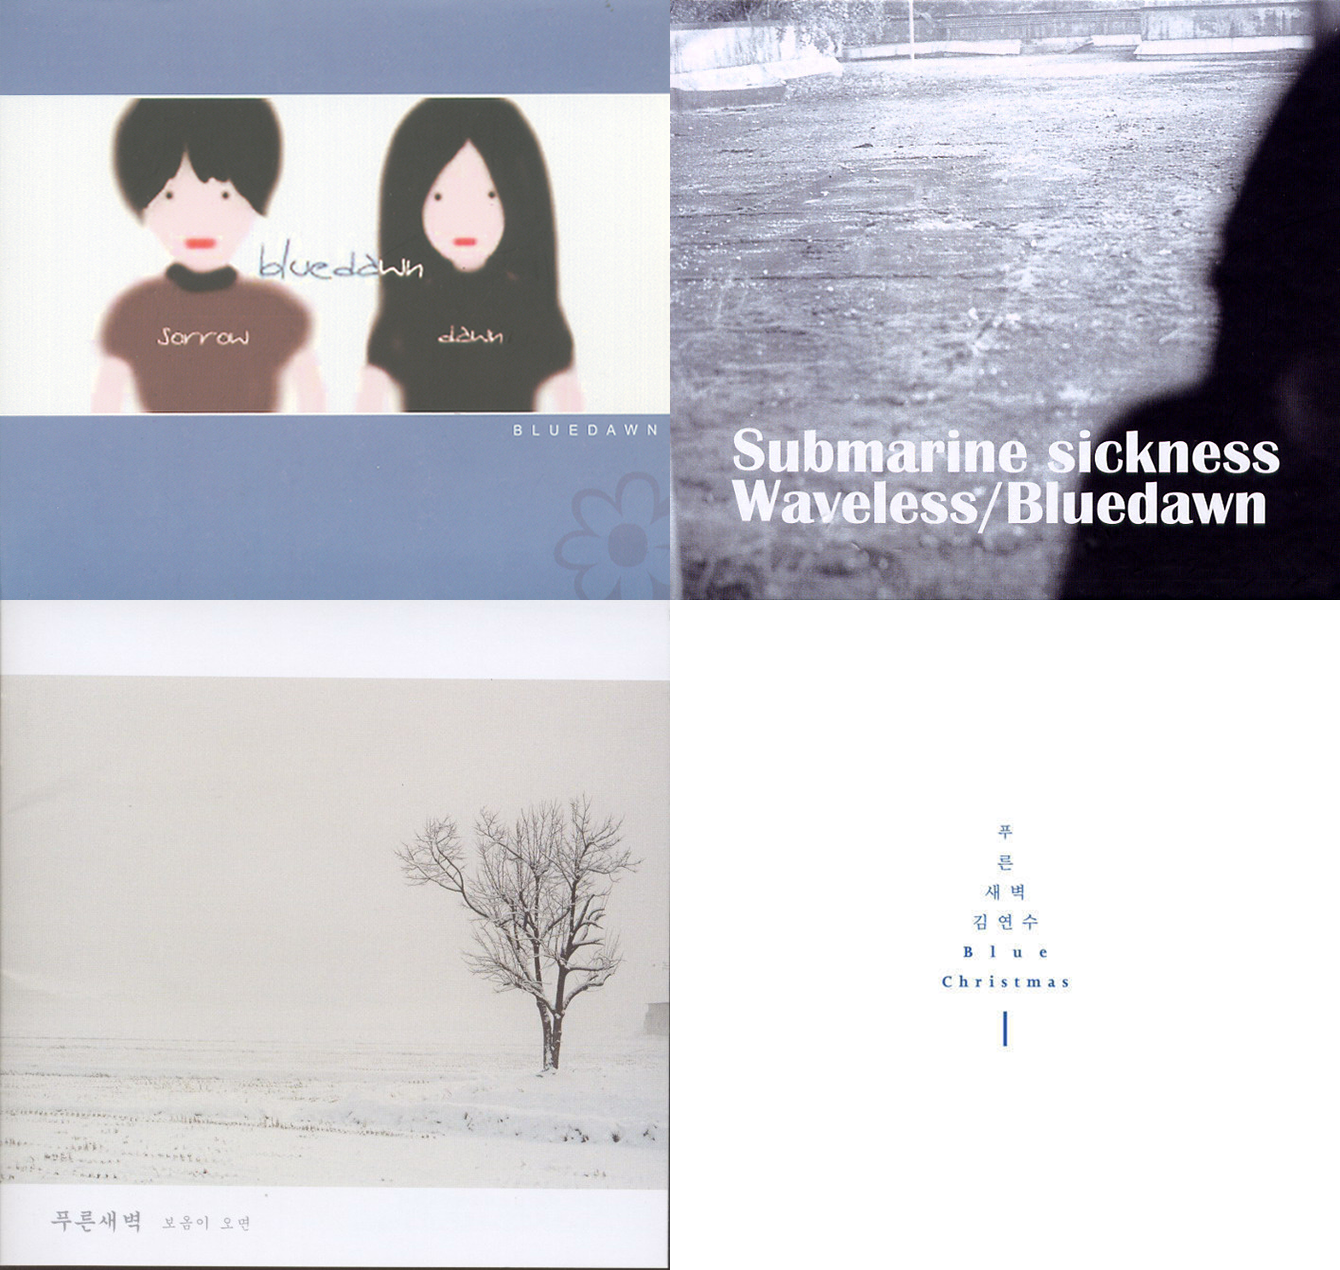 [Bluedawn] / [Submarine Sickness And Waveless EP] / [보옴이 오면] / [Blue Christmas EP]